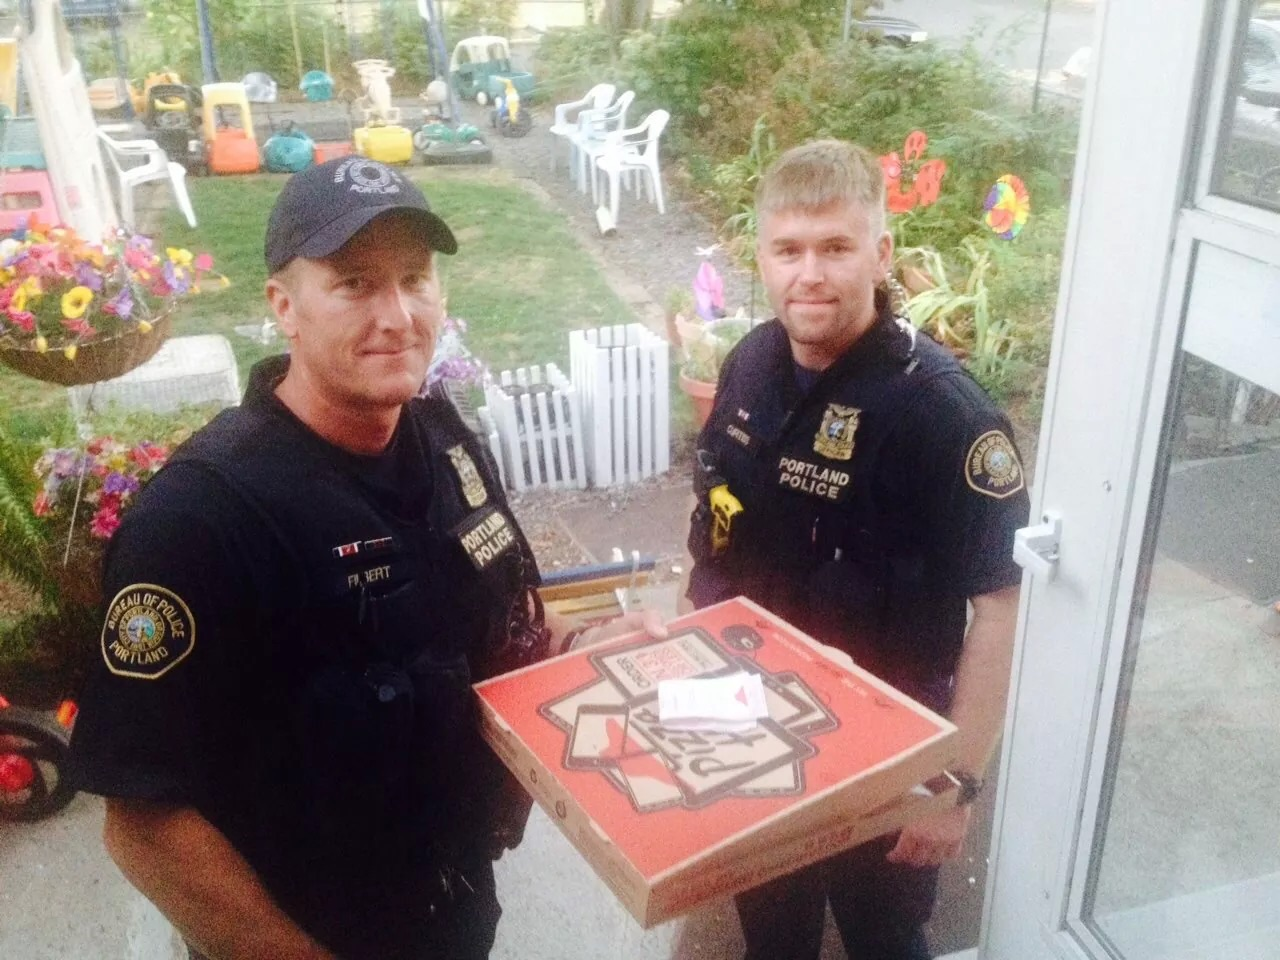 Police officers completing the pizza delivery for the delivery man who was involved in an accident